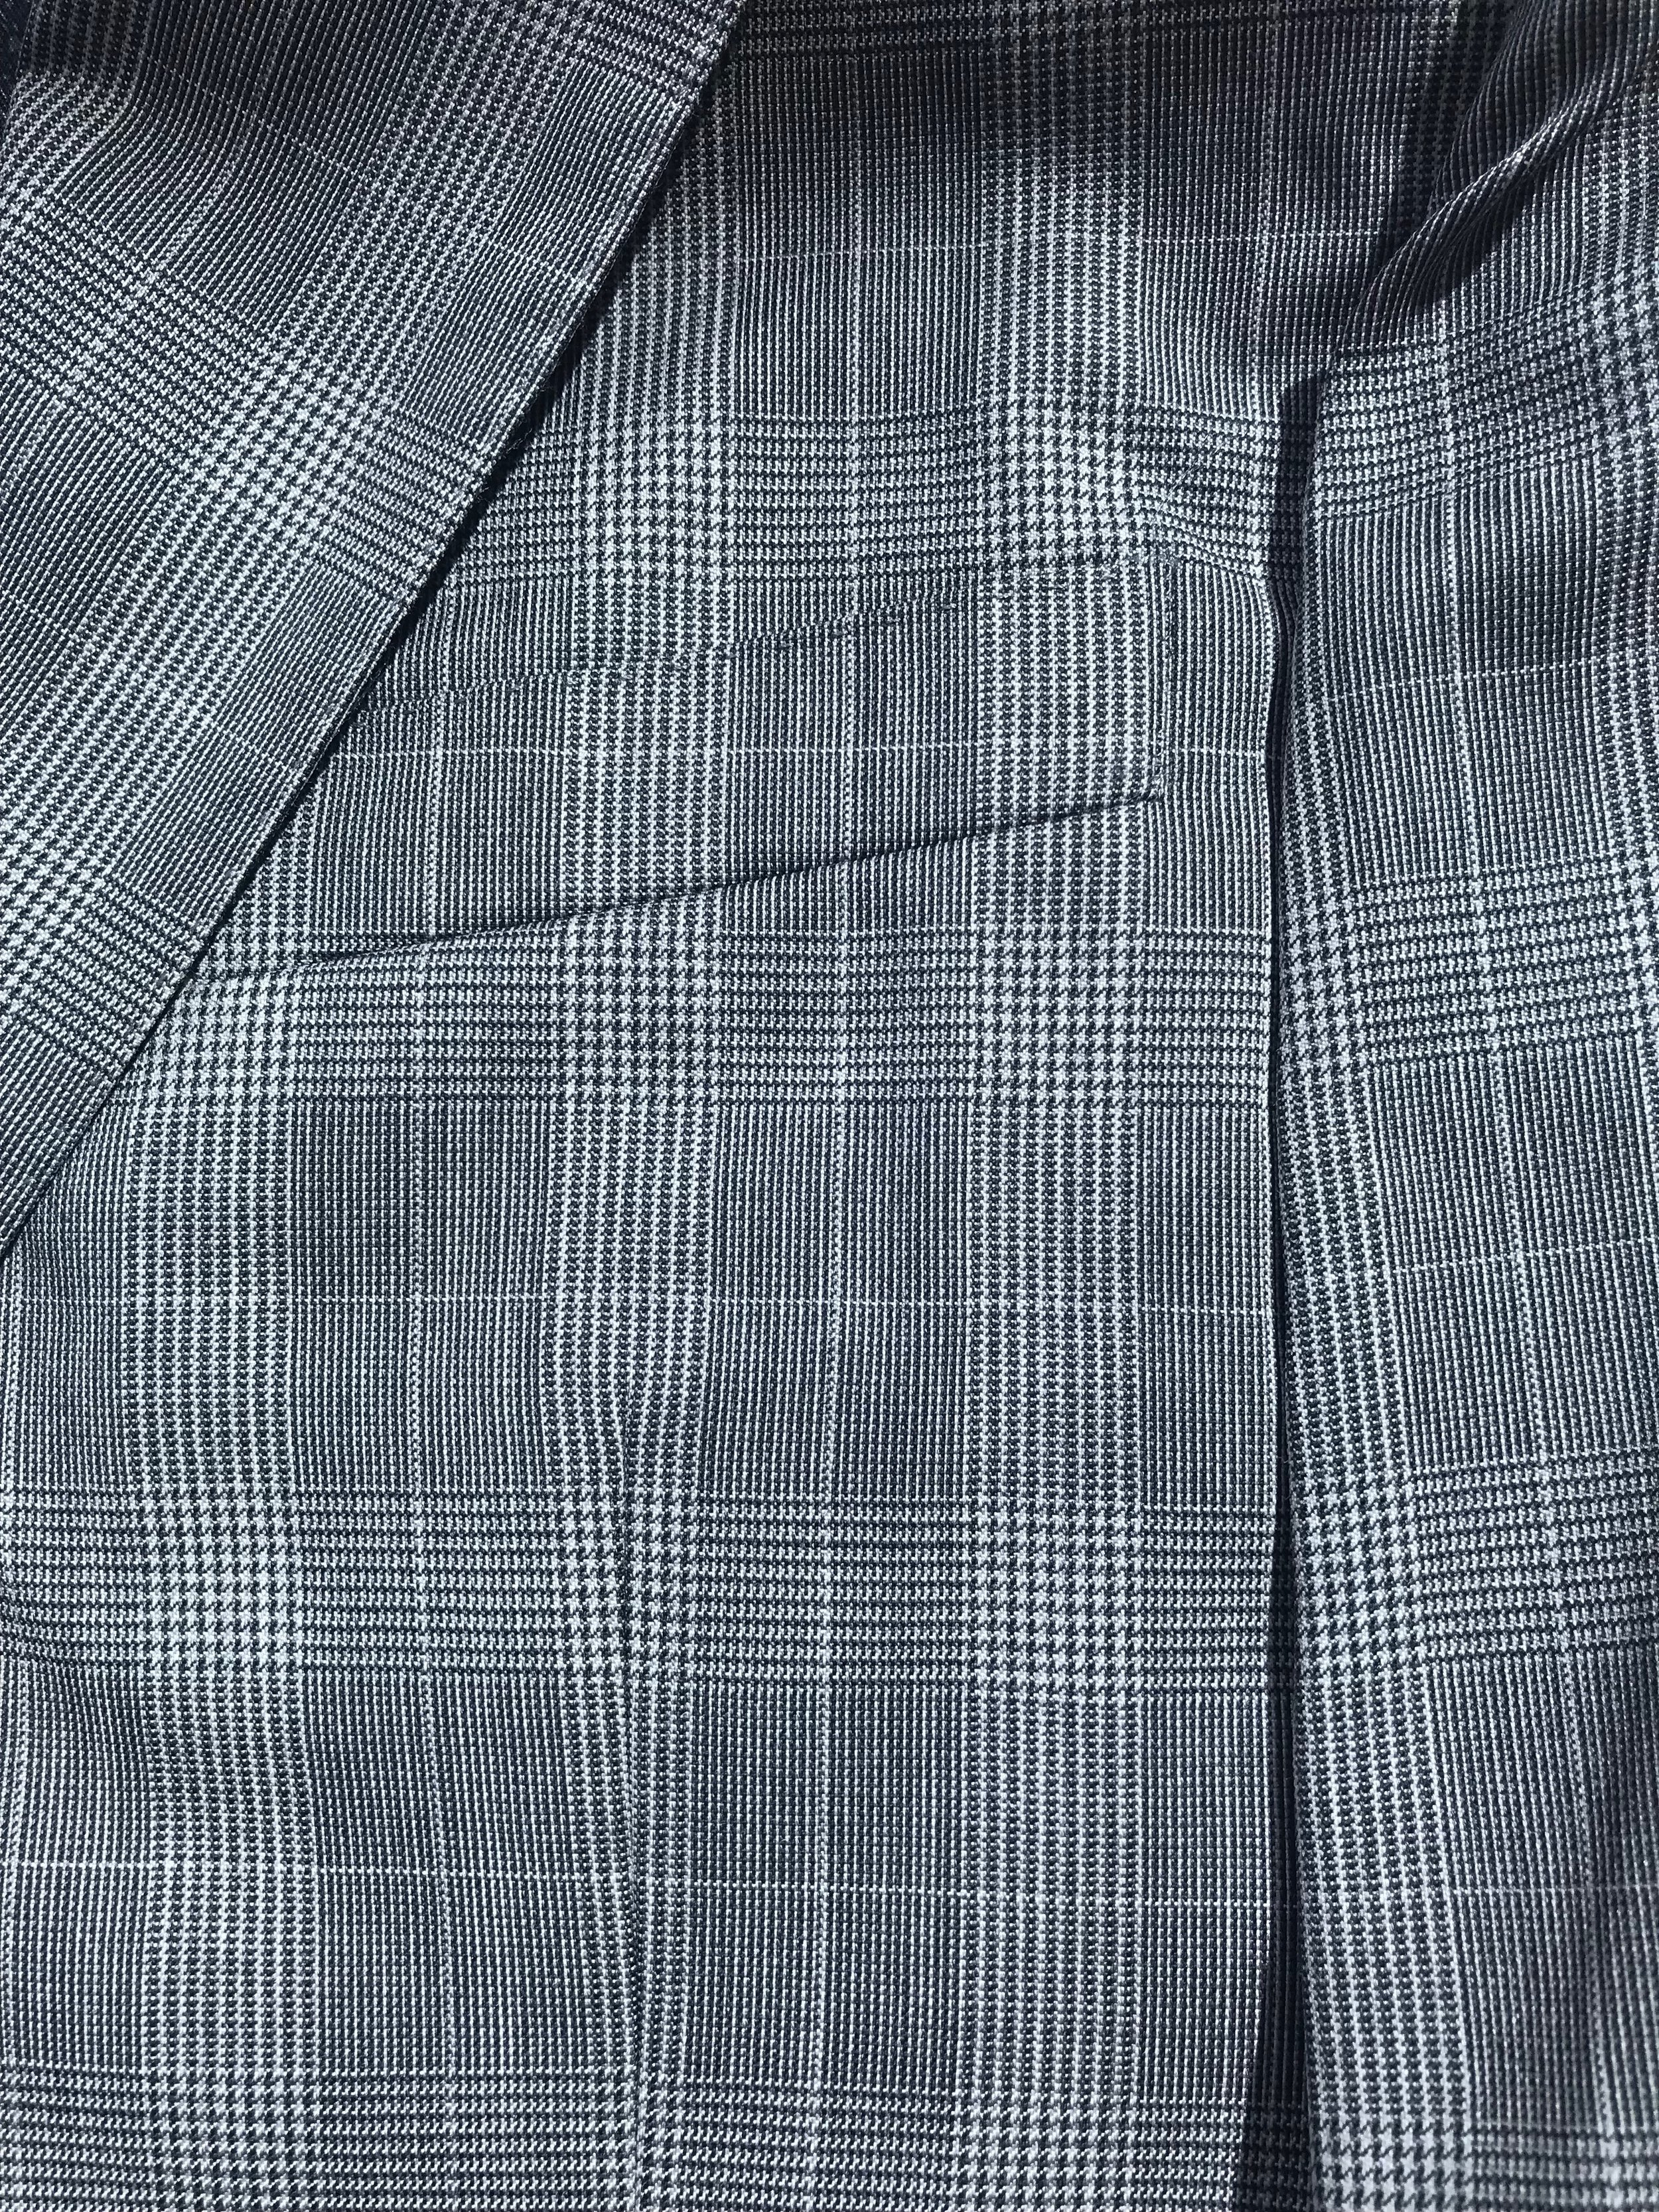 Prince of Wales Glen Plaid: Note how patterns match at welt pocket (vertical), chest to sleeve (horizontal), and lapel to chest (diagonal)